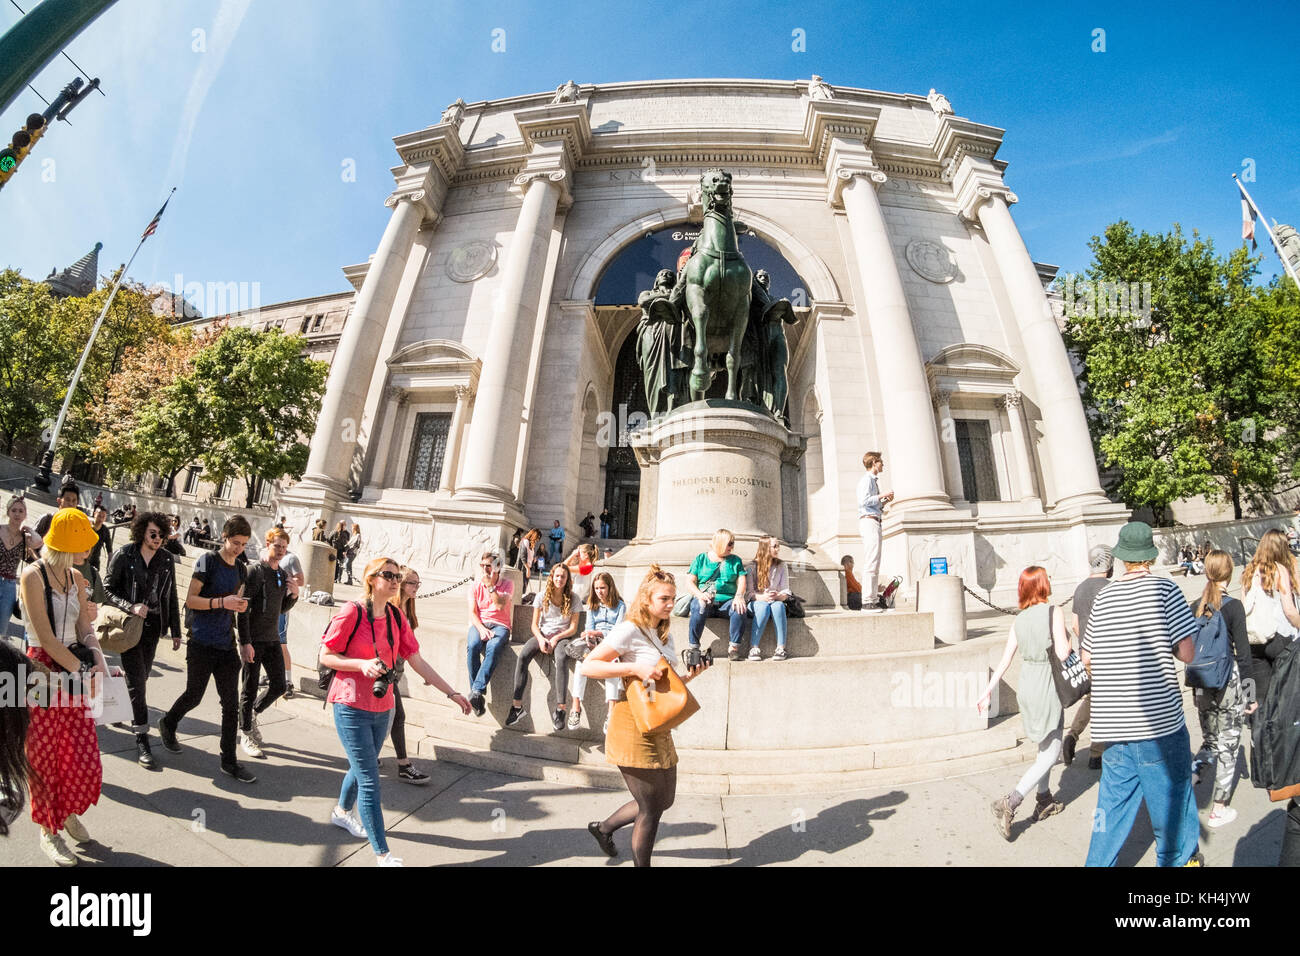 Museum of American Natural History, Central Park West, Manhattan, New York City, United States of America. - Stock Image